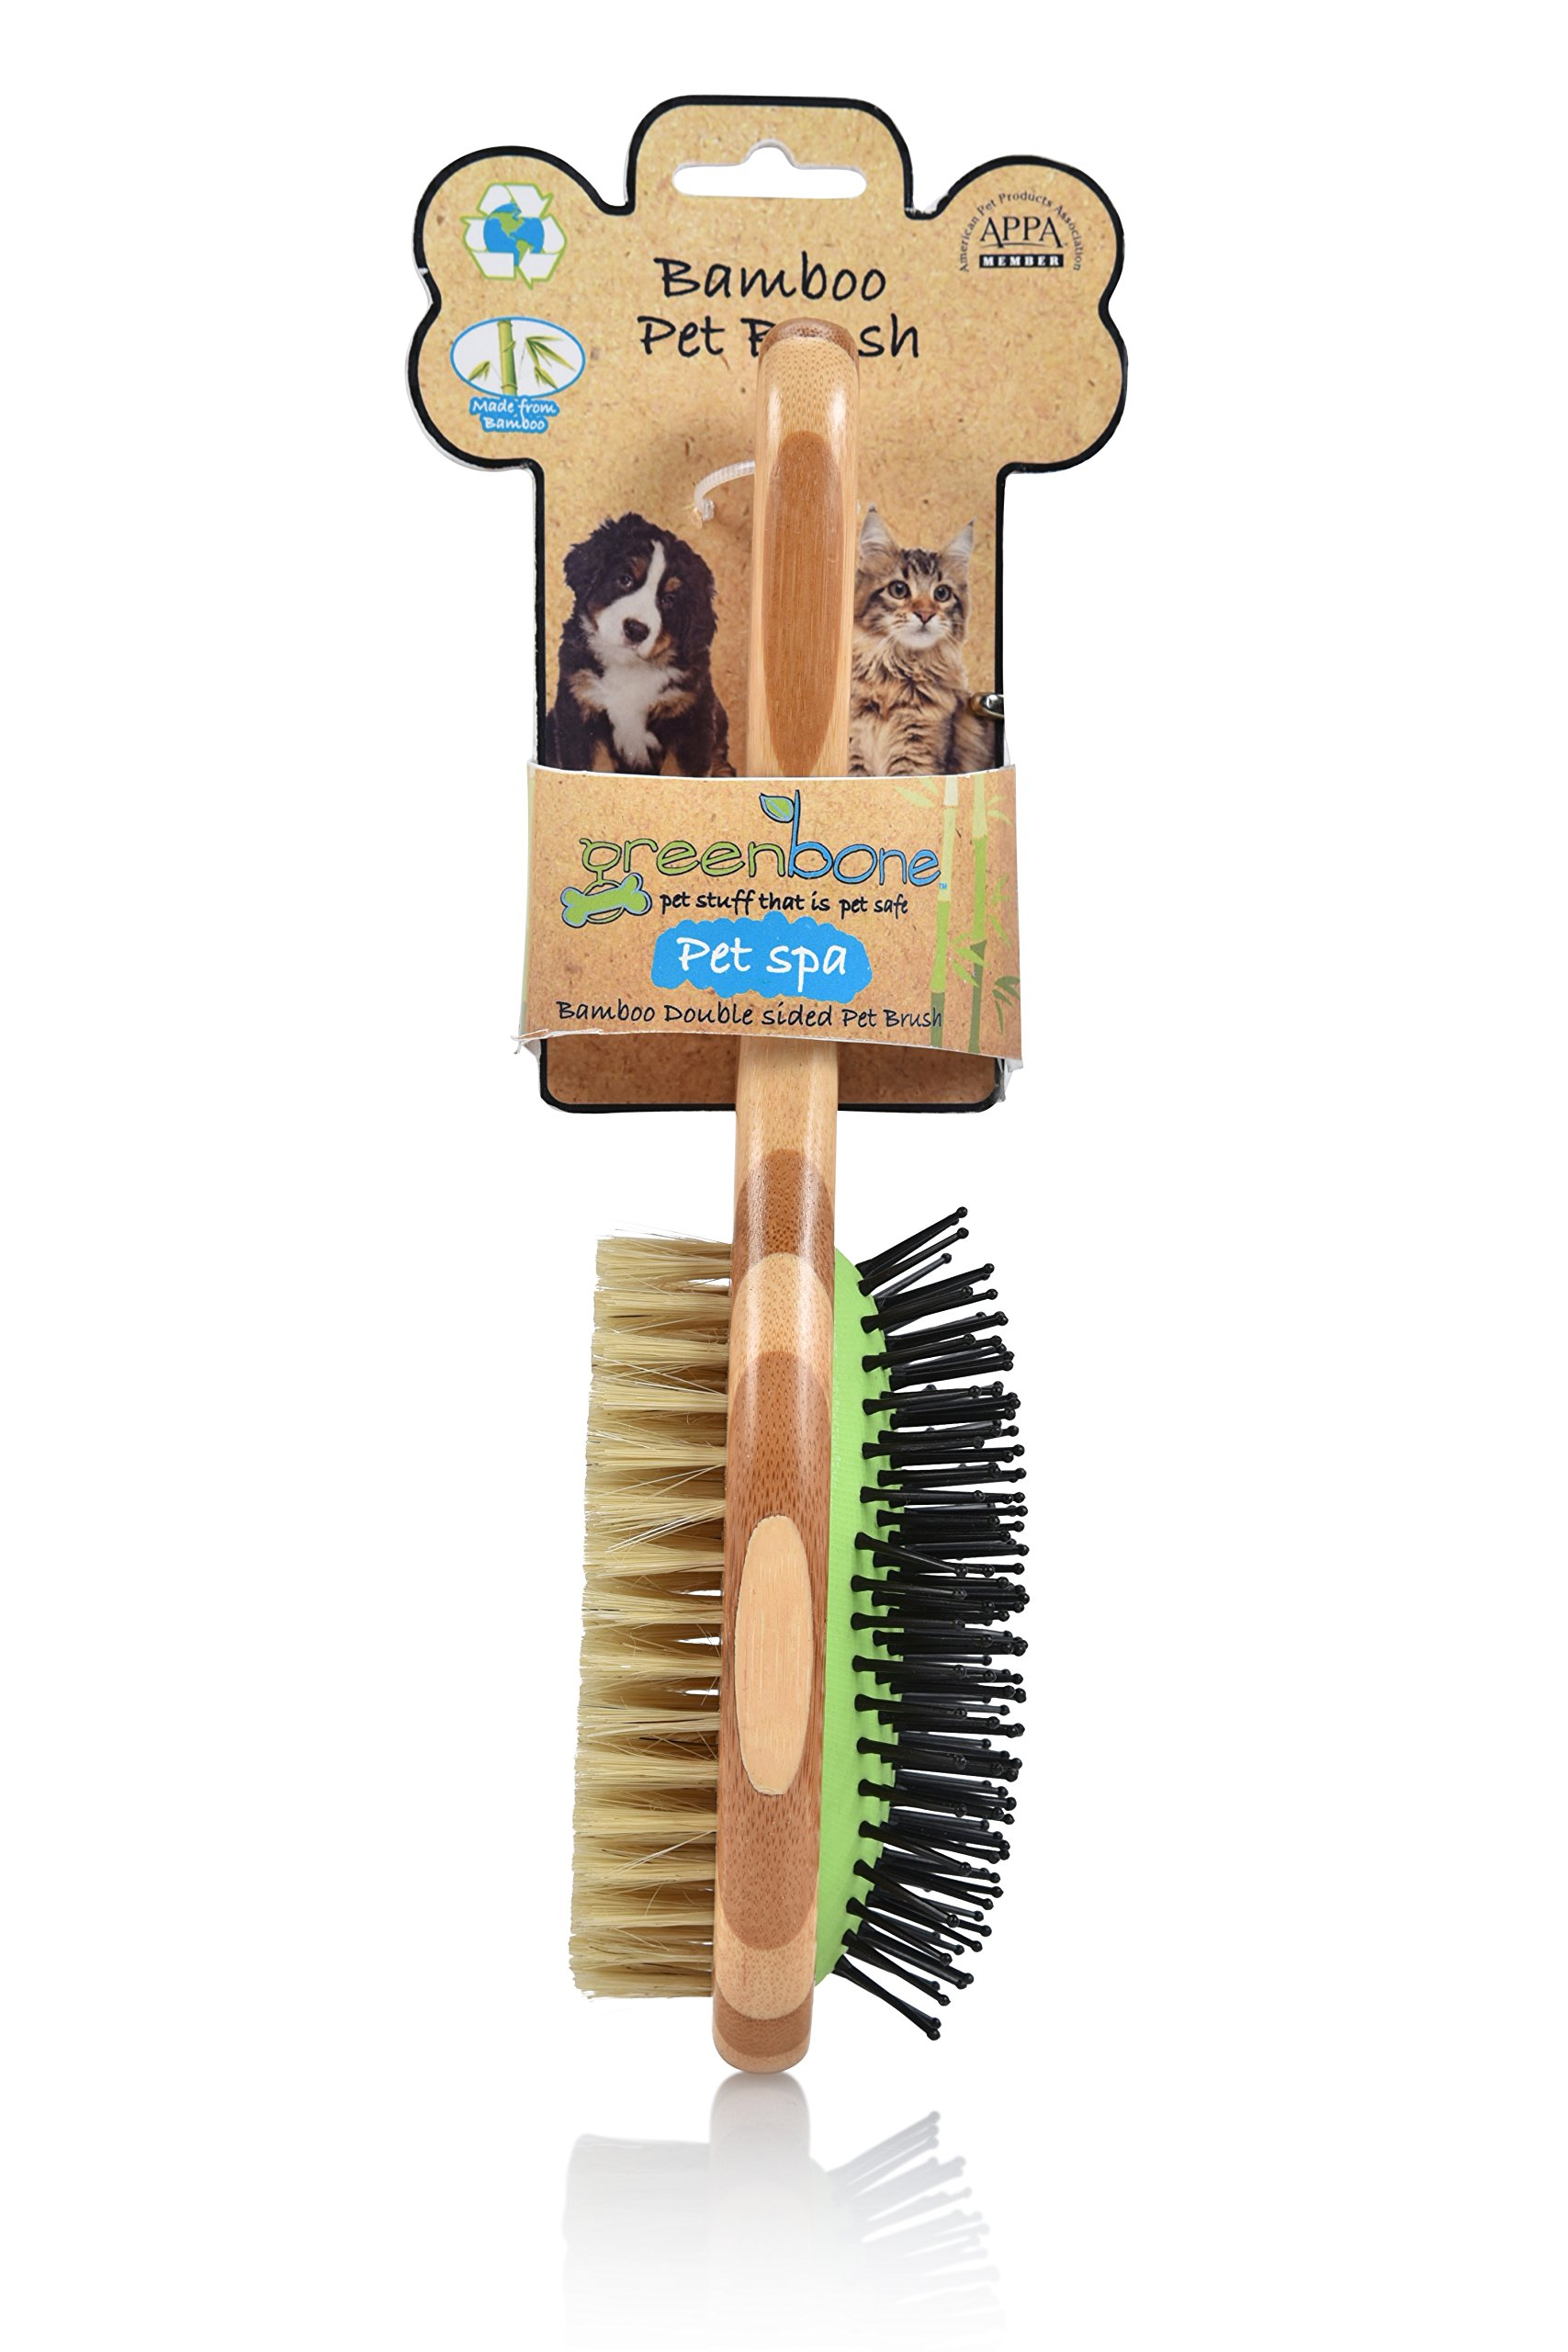 Greenbone All Natural Bamboo Pet Grooming Brushes - Made from Sustainable Materials (Double Sided Brush)